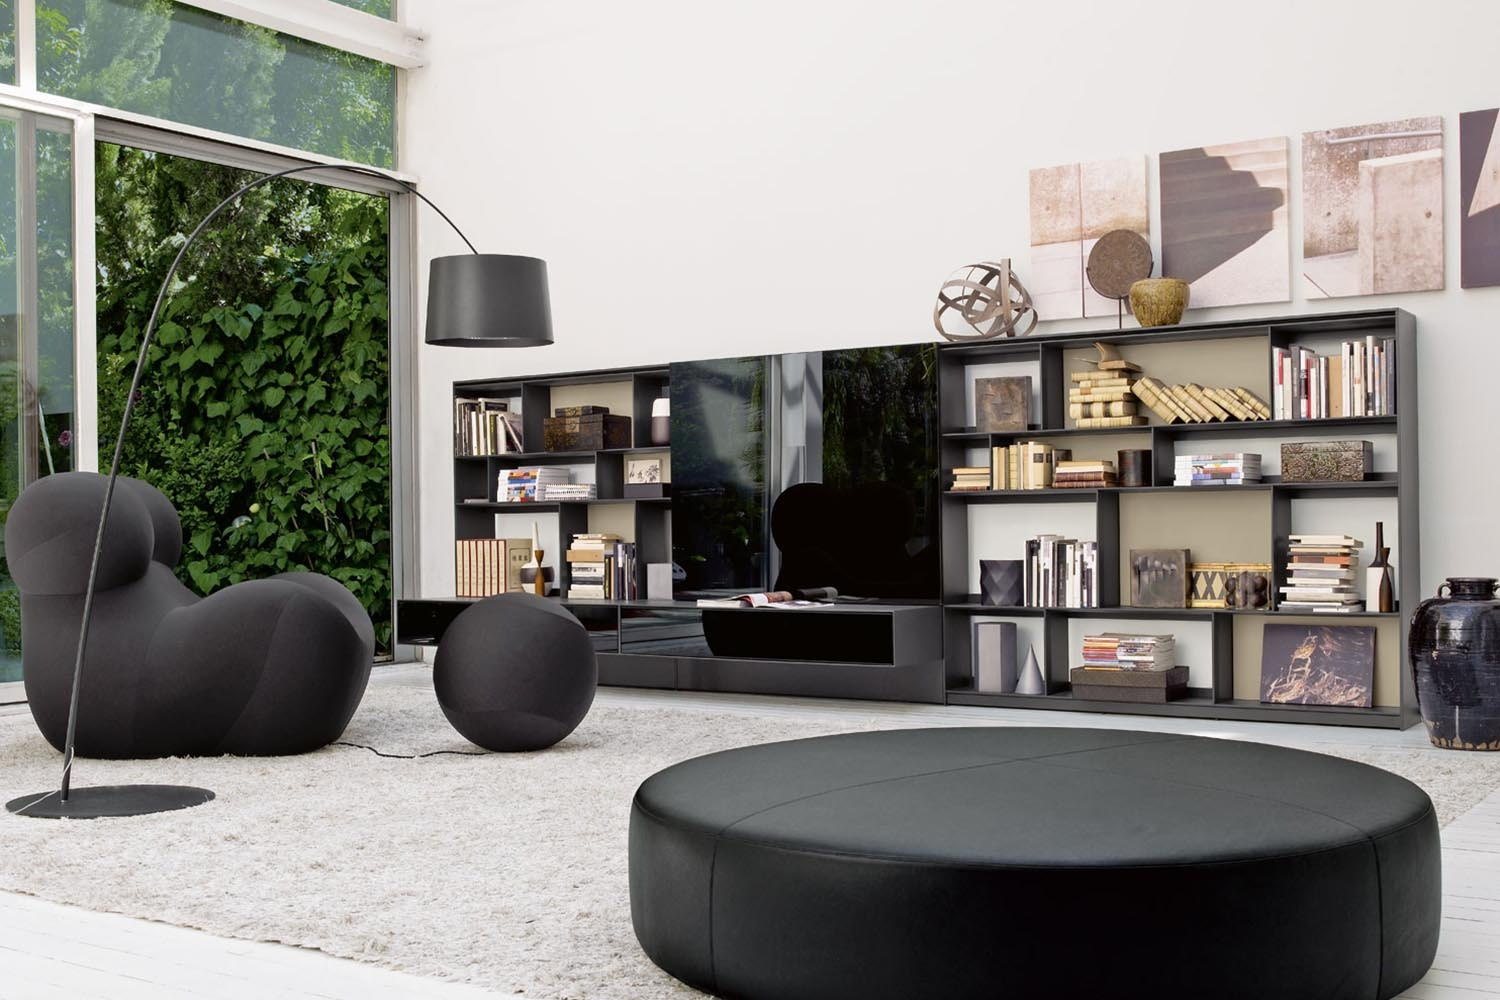 Flat.C Storage Unit by Antonio Citterio for B&B Italia